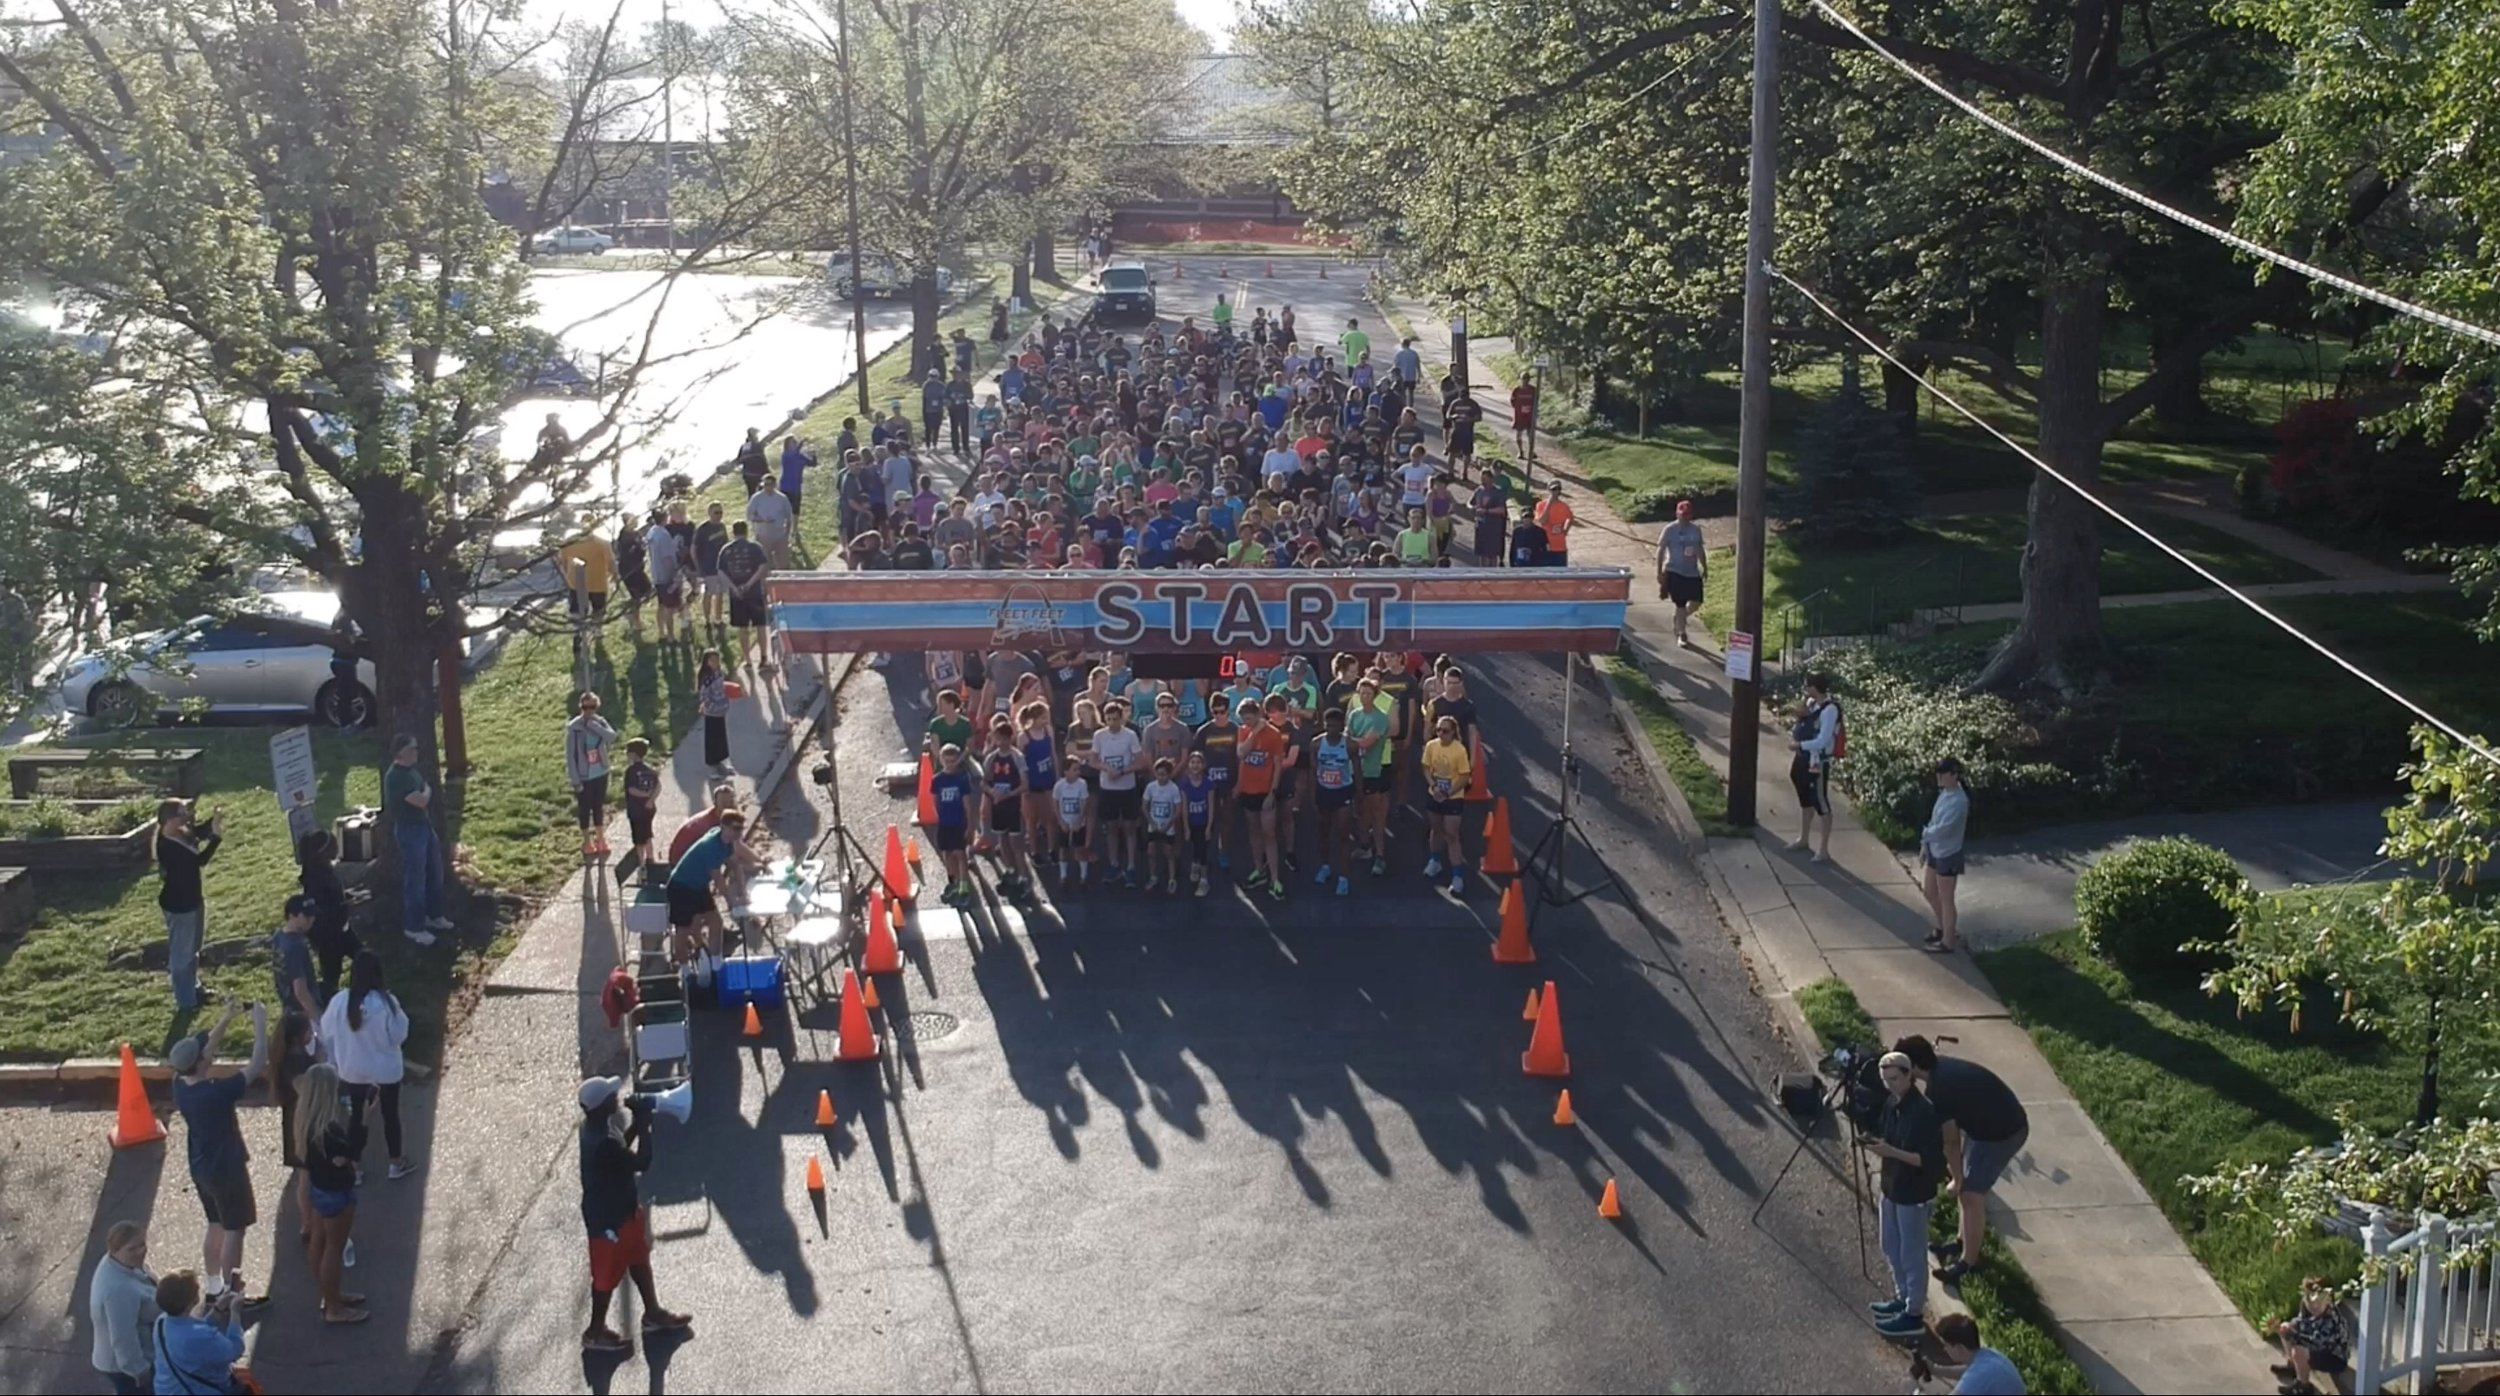 … and they're off! - Want to help make sure the Jim Schoemehl Run runs smoothly? Need some volunteer hours? Love being involved in community events?Sign up to volunteer at the run!